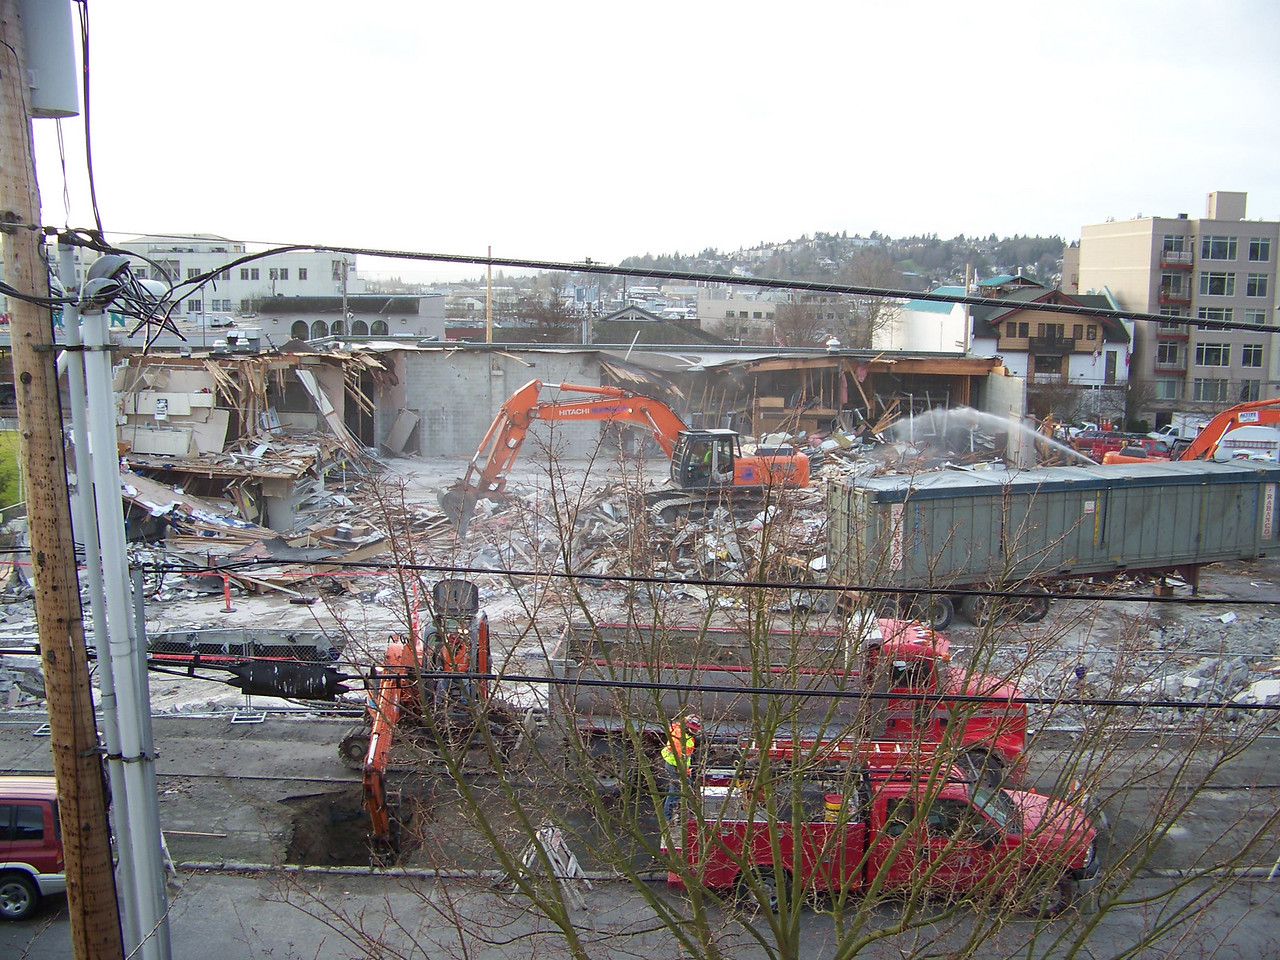 The old Ballard QFC grocery store next to the park (and directly across from my building) shut down during the first week of December 2007.  Demolition began in early January 2008.